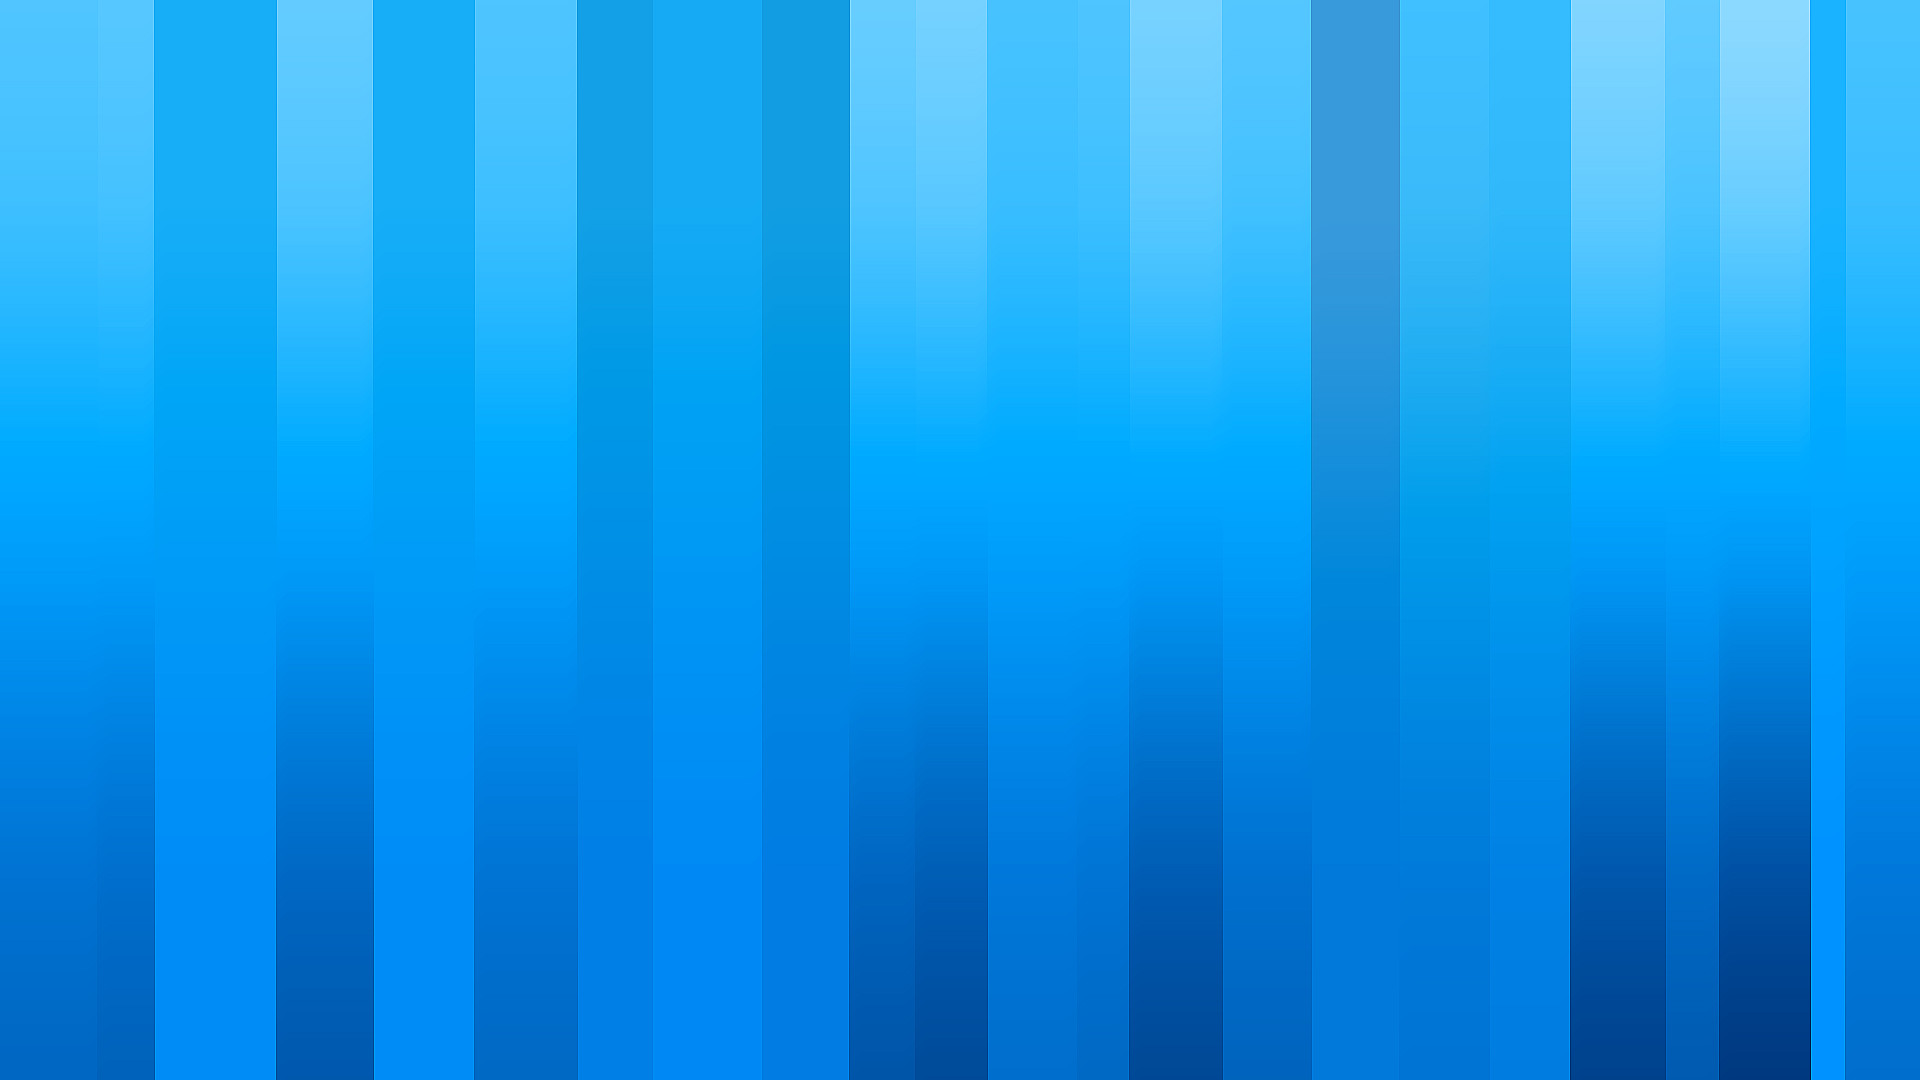 Stripe blue wallpaper